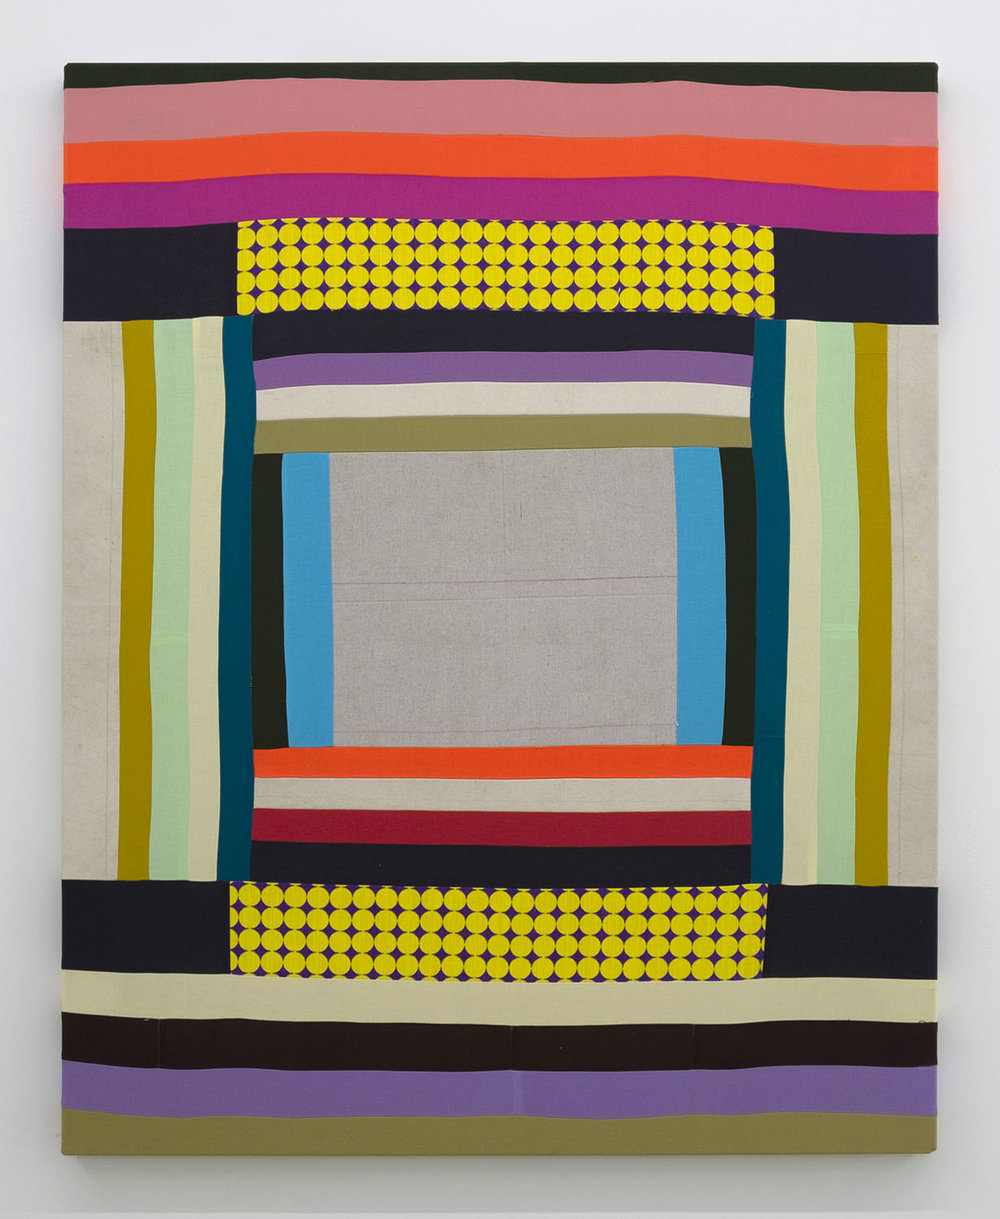 Casino Karaoke,   2018 Pieced and sewn cotton and canvas, colored pencil 45 x 36 inches (114.3 x 91.4 cm)